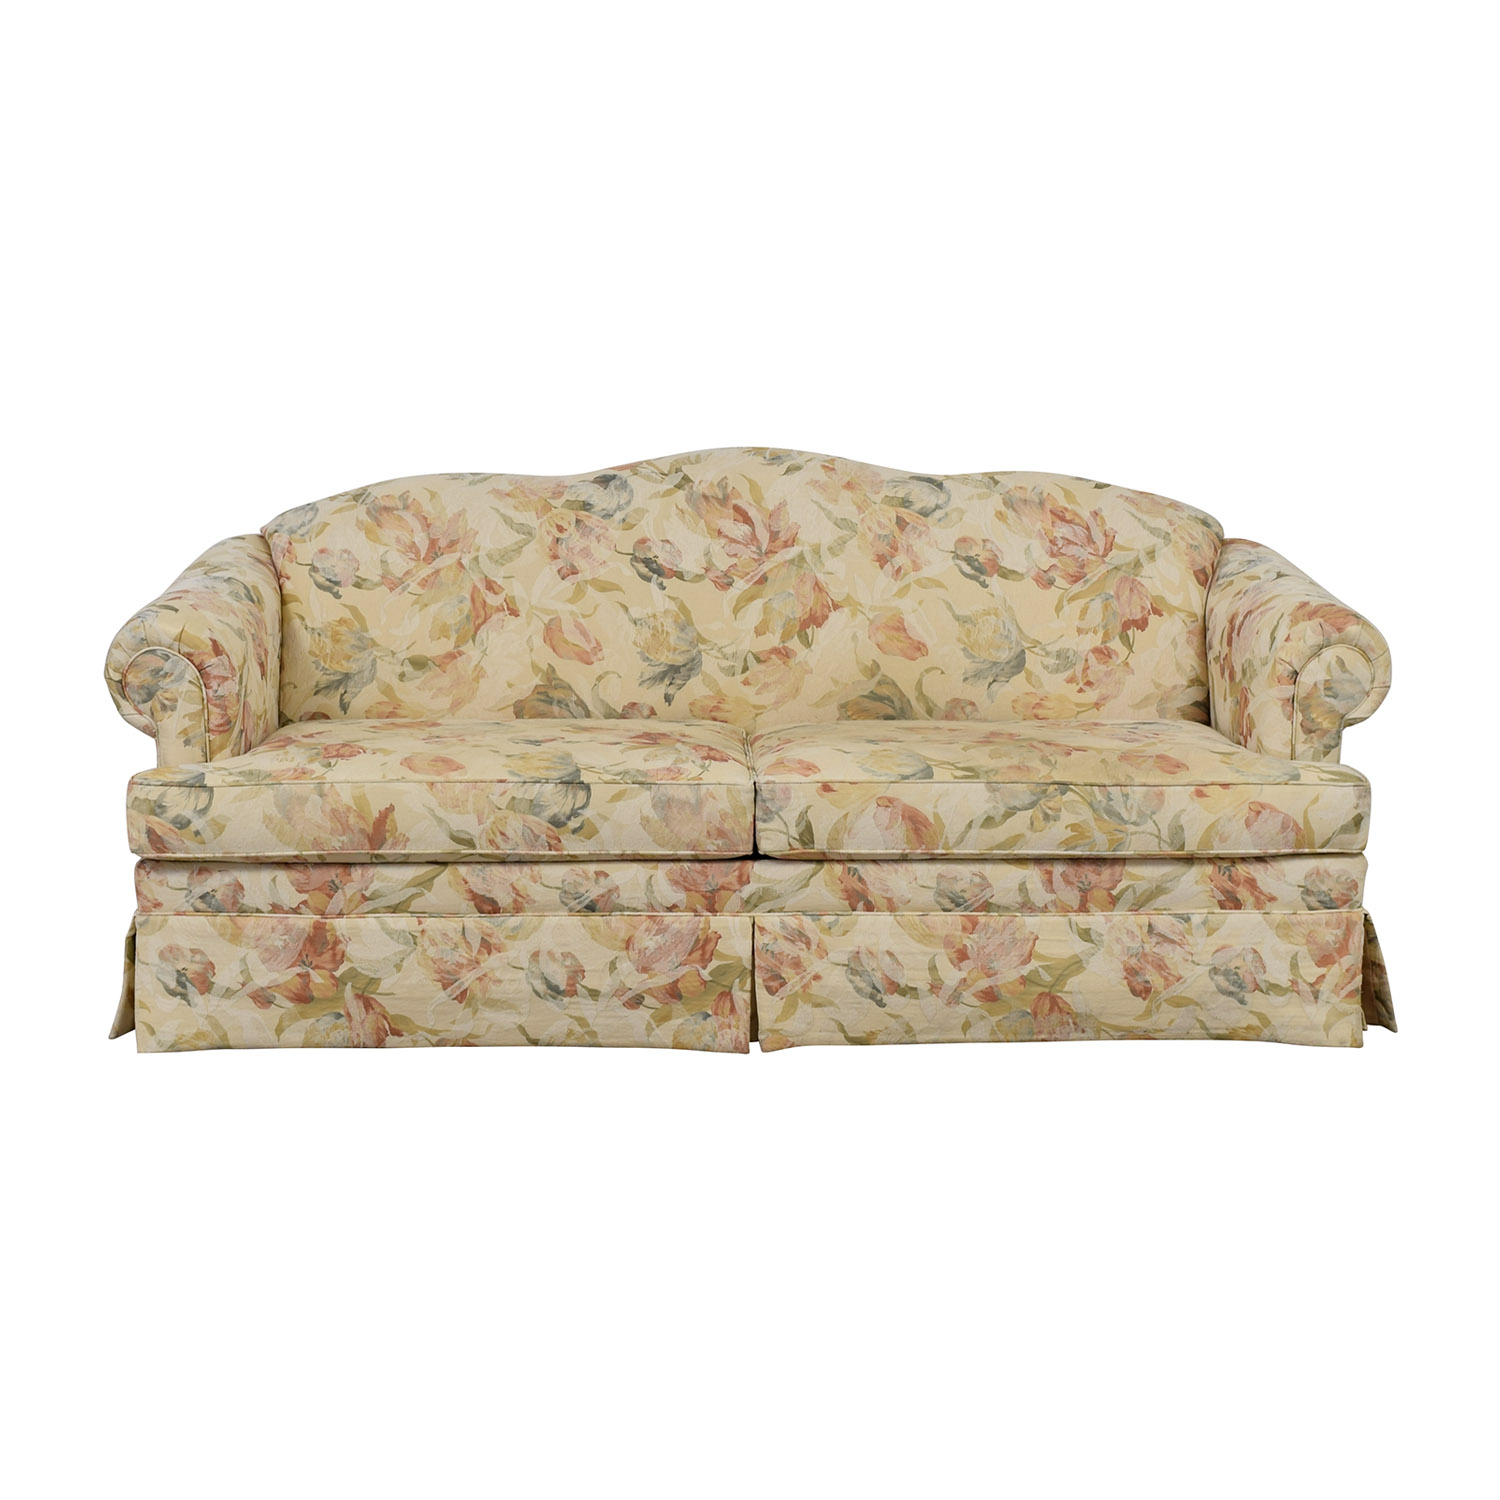 Ethan Allen Multi Colored Fl Upholstered Sofa Coupon